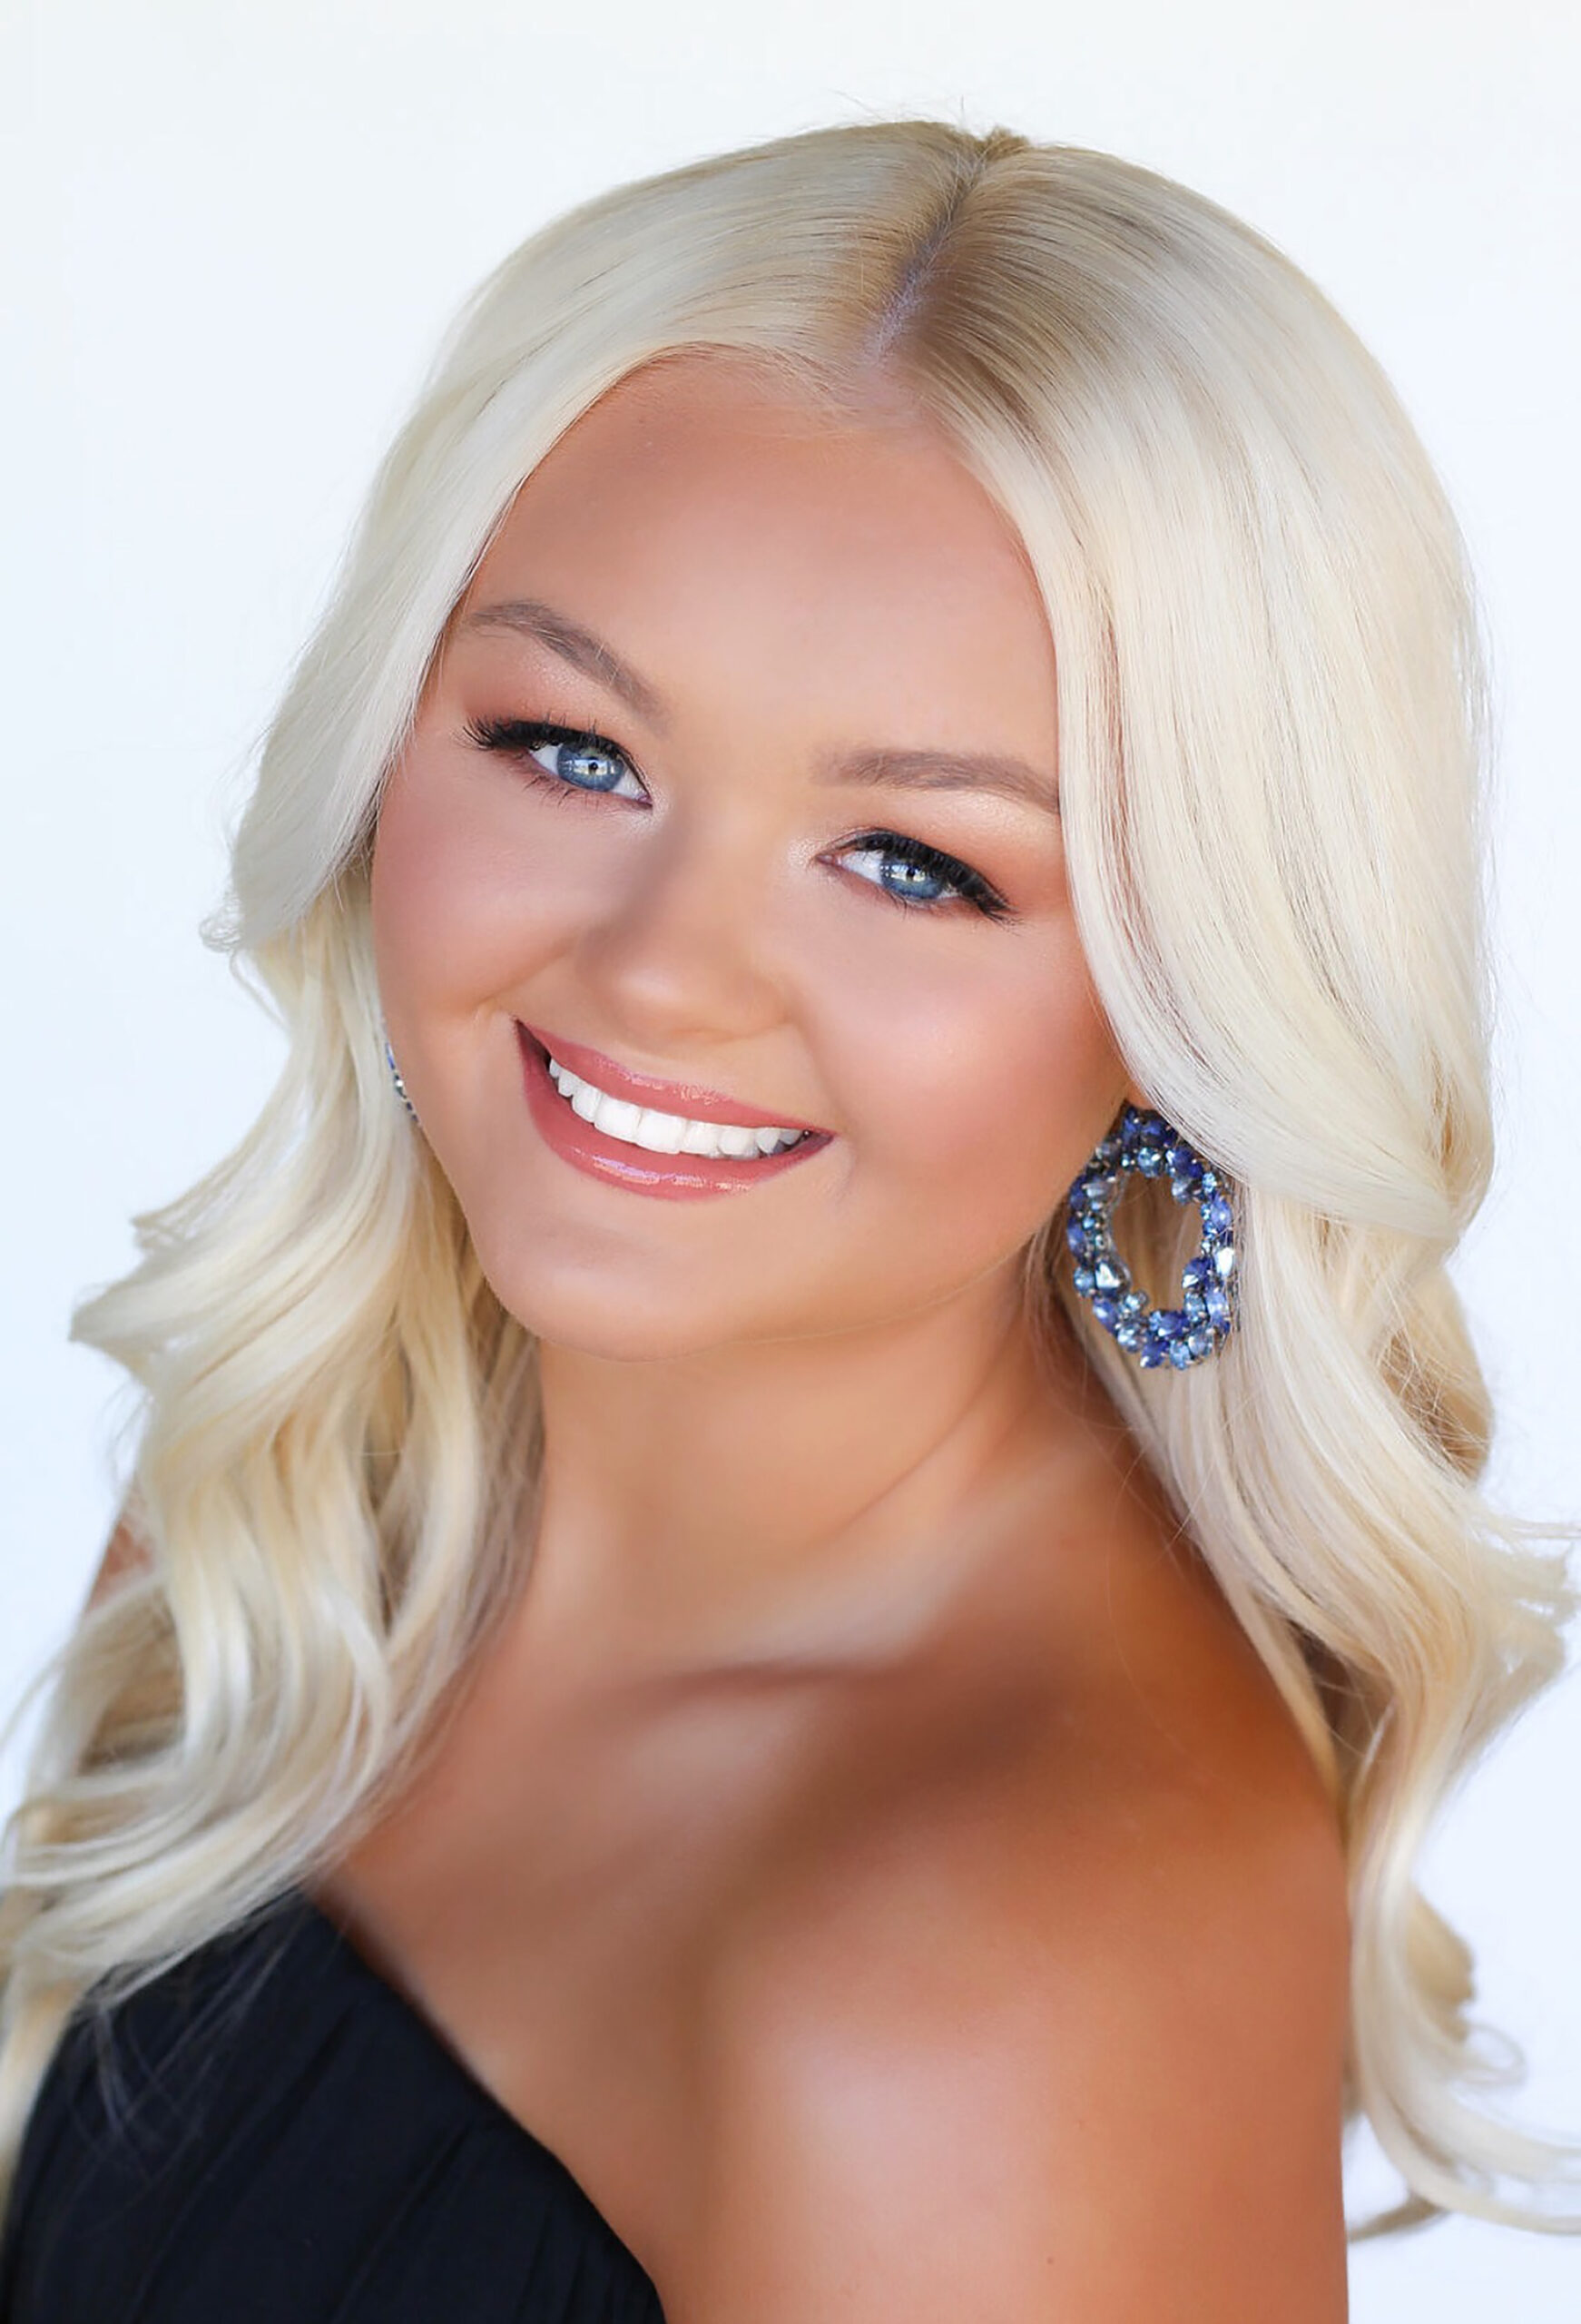 Gracie Carroll MISS MARICOPA COUNTY TEEN USA